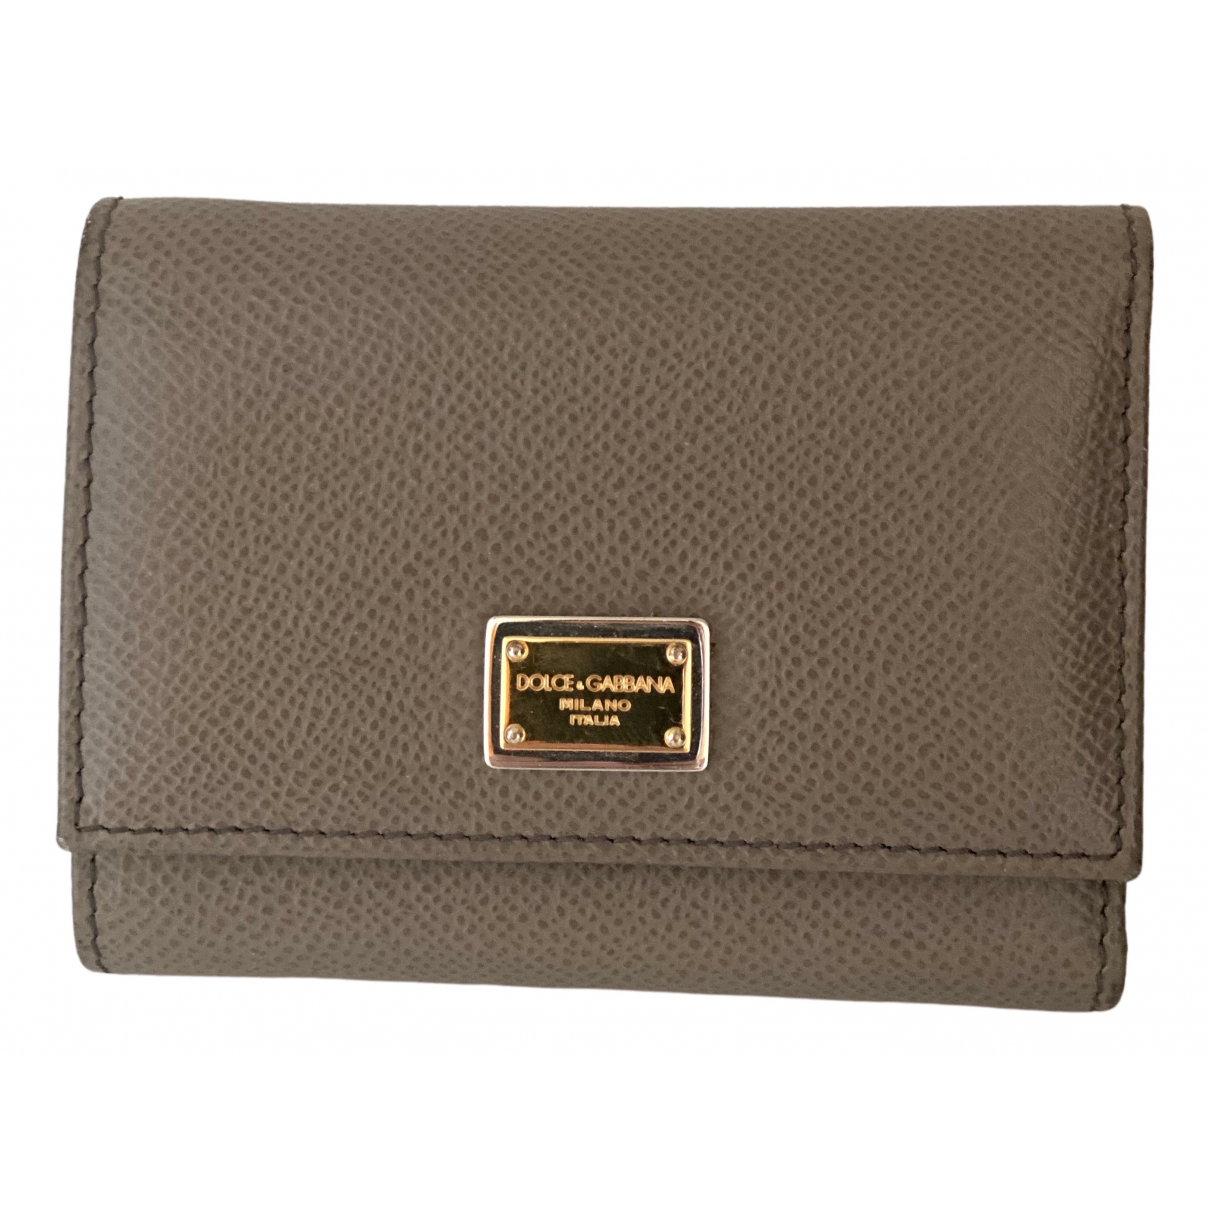 Dolce & Gabbana \N Beige Leather wallet for Women \N